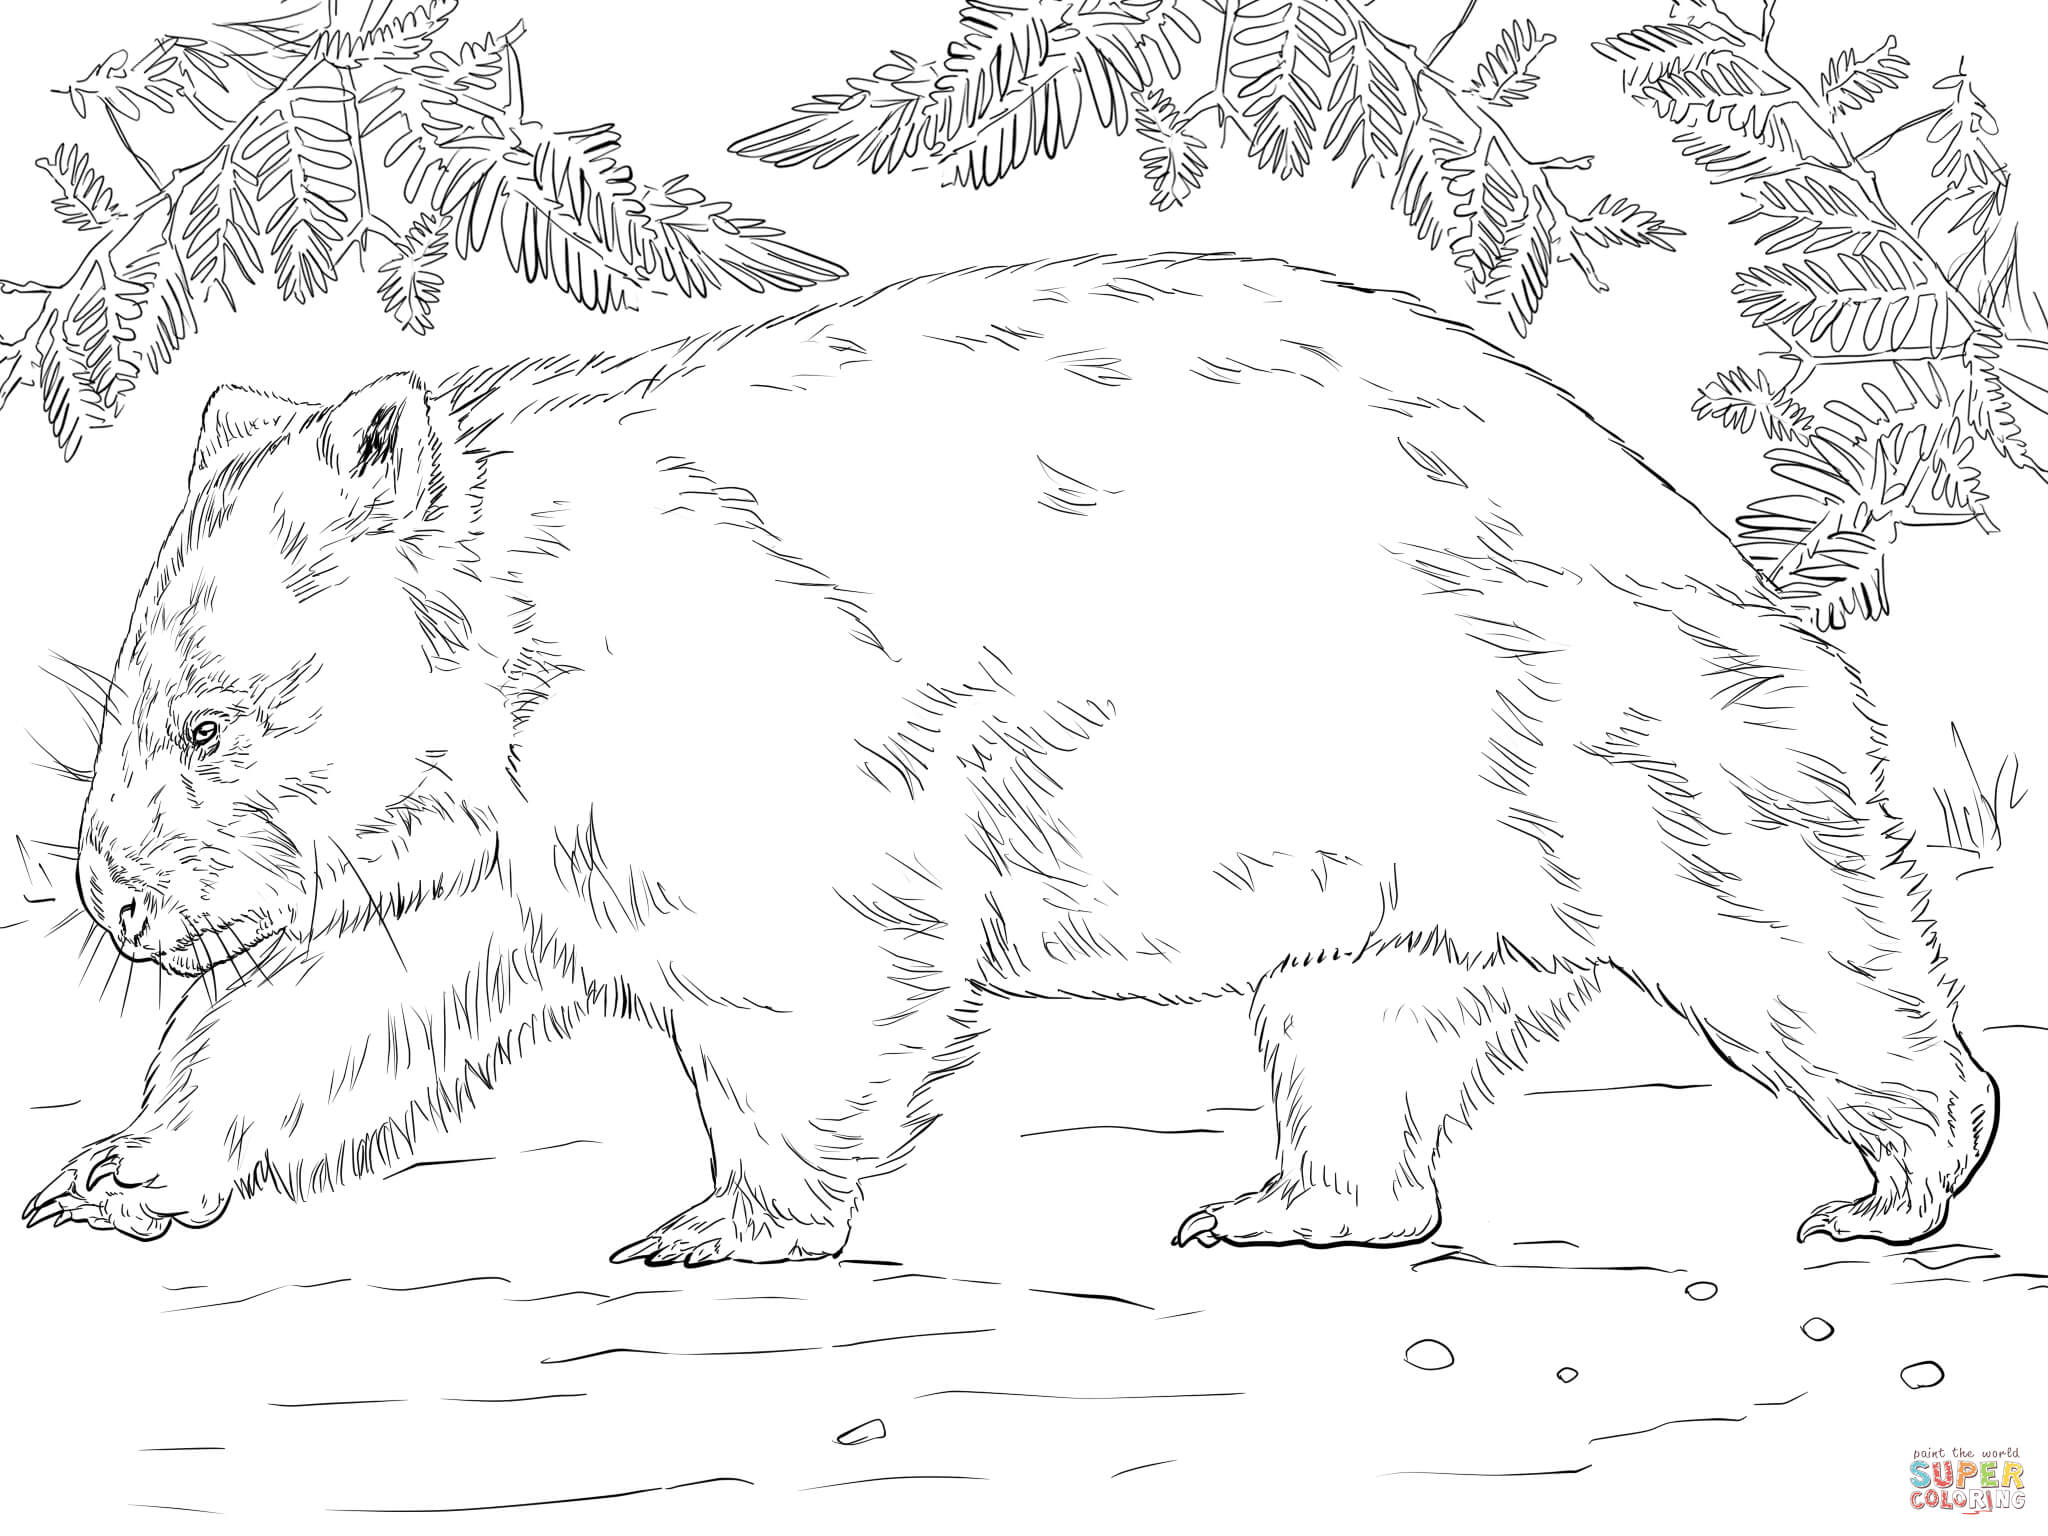 wombat colouring pages wombat from australia coloring page free printable colouring wombat pages